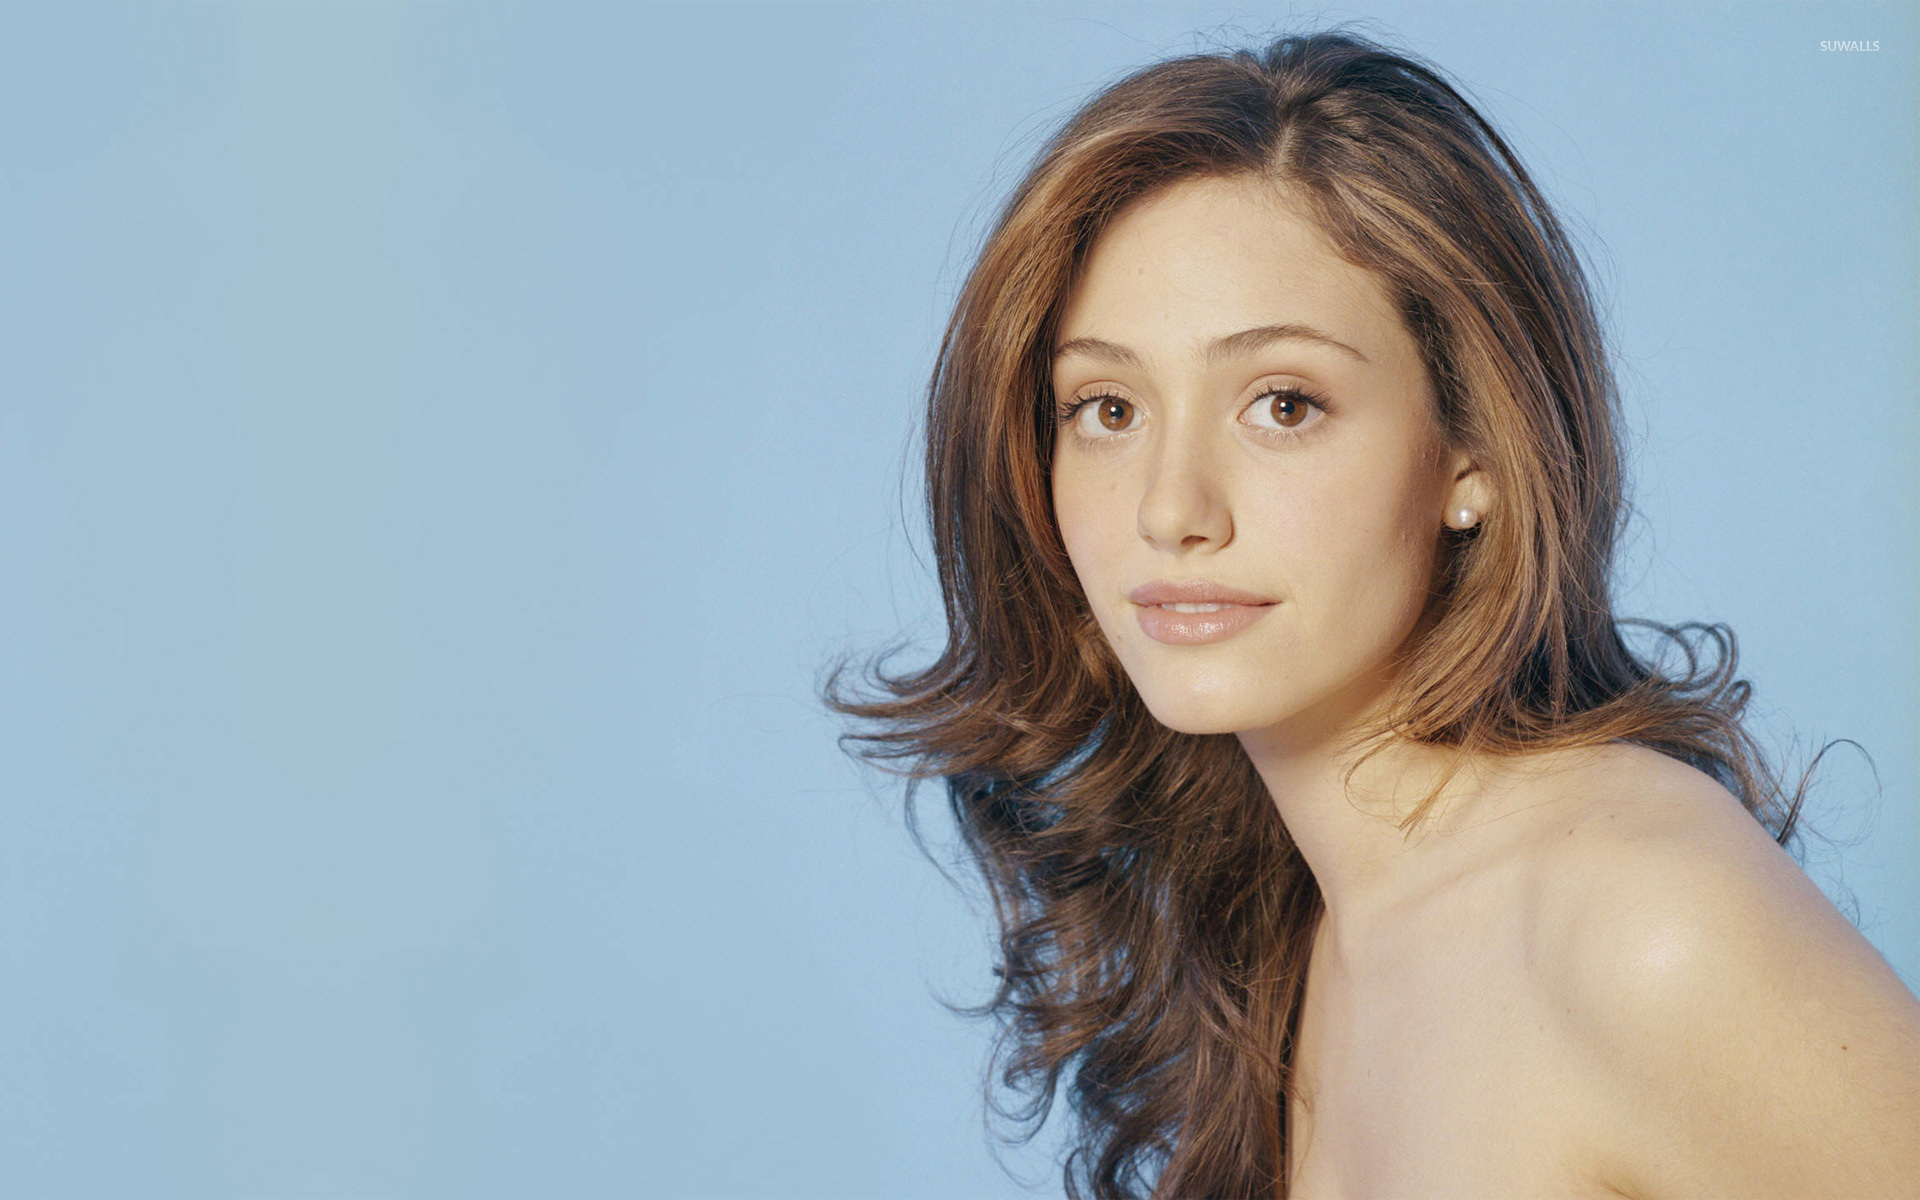 Emmy Rossum 11 Wallpaper Celebrity Wallpapers 4732